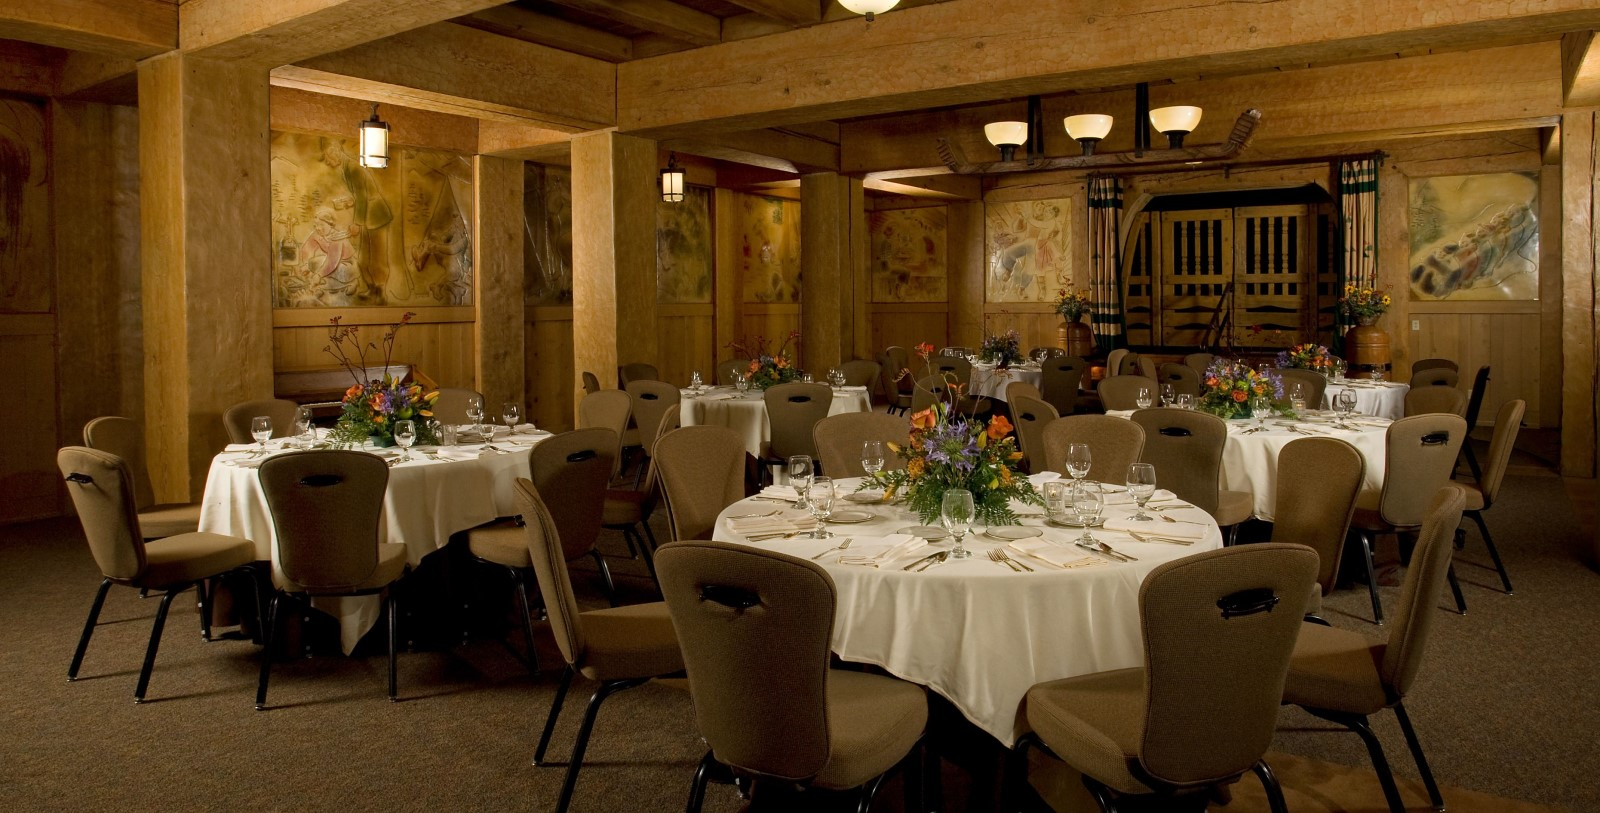 Image of the Barlow Room at Timberline Lodge